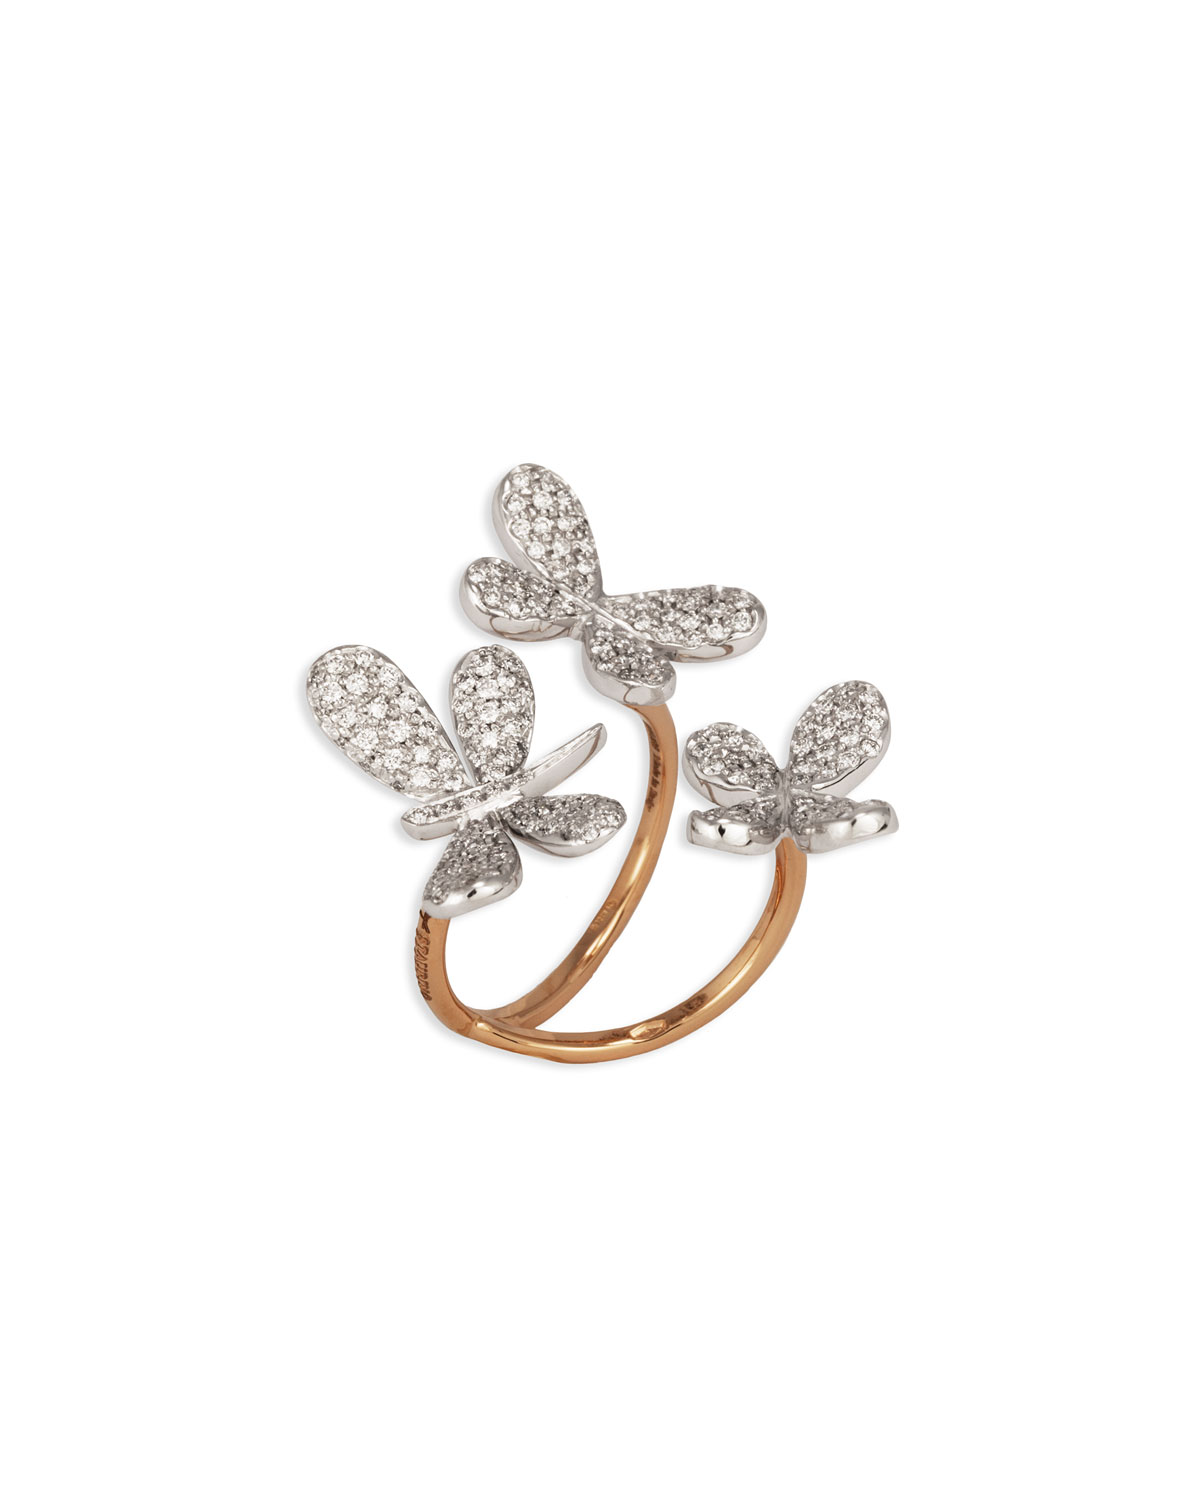 STAURINO FRATELLI Nature 18K Diamond Butterfly & Dragonfly Ring, Size 7